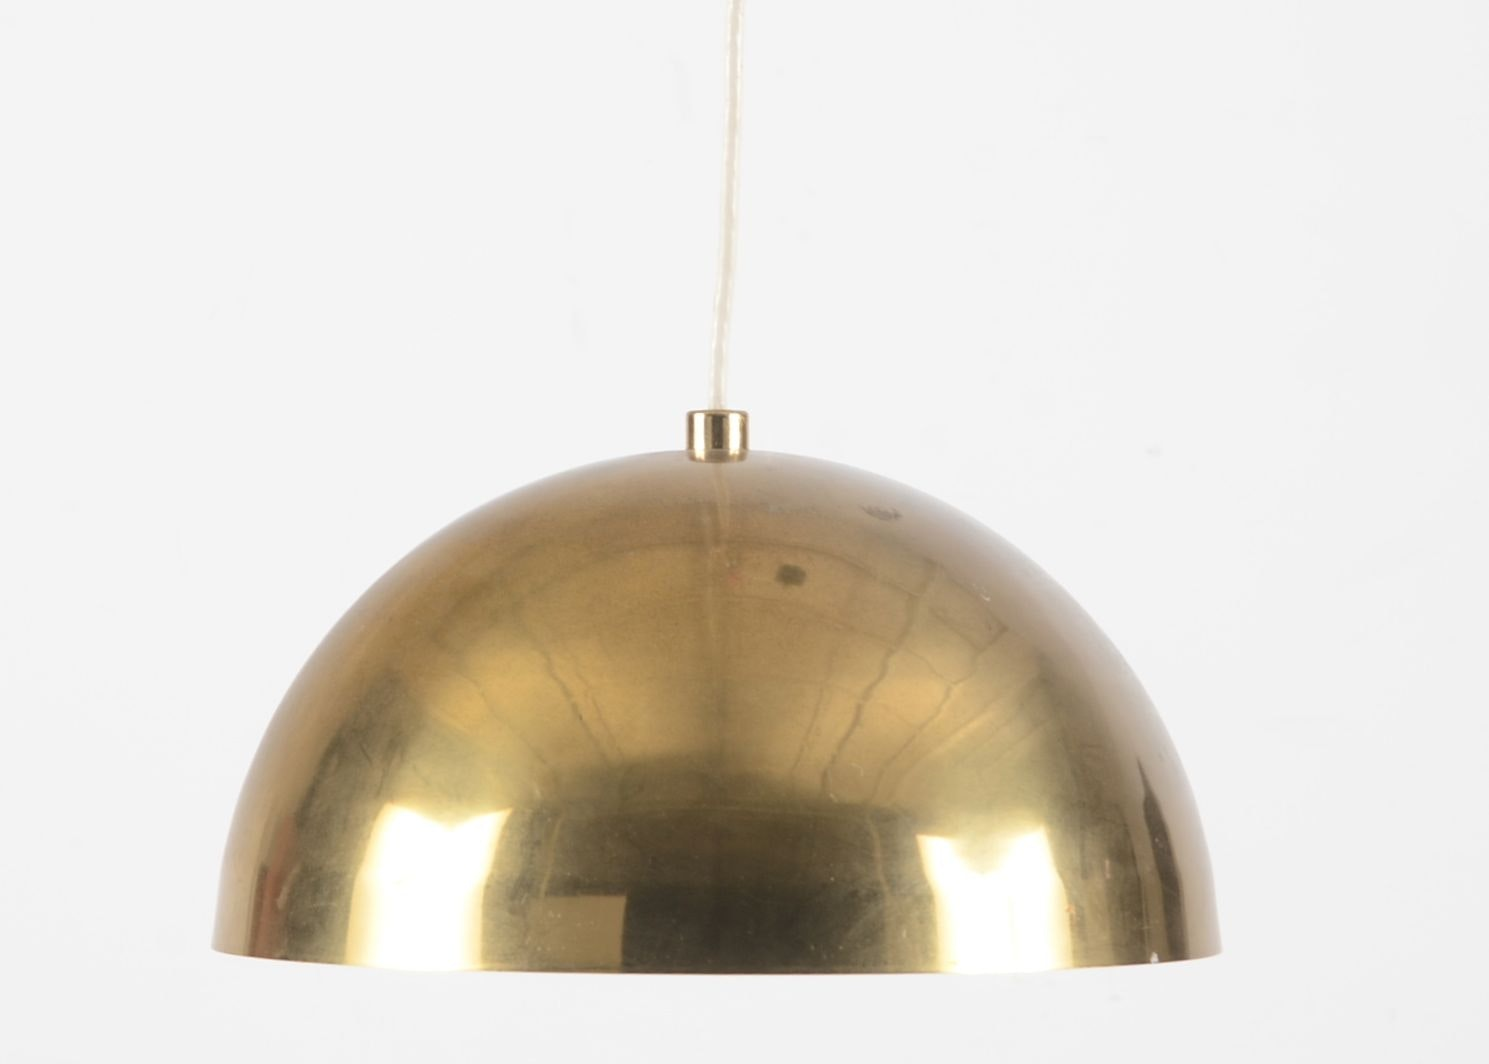 Brass Tone Dome Light Fixture ...